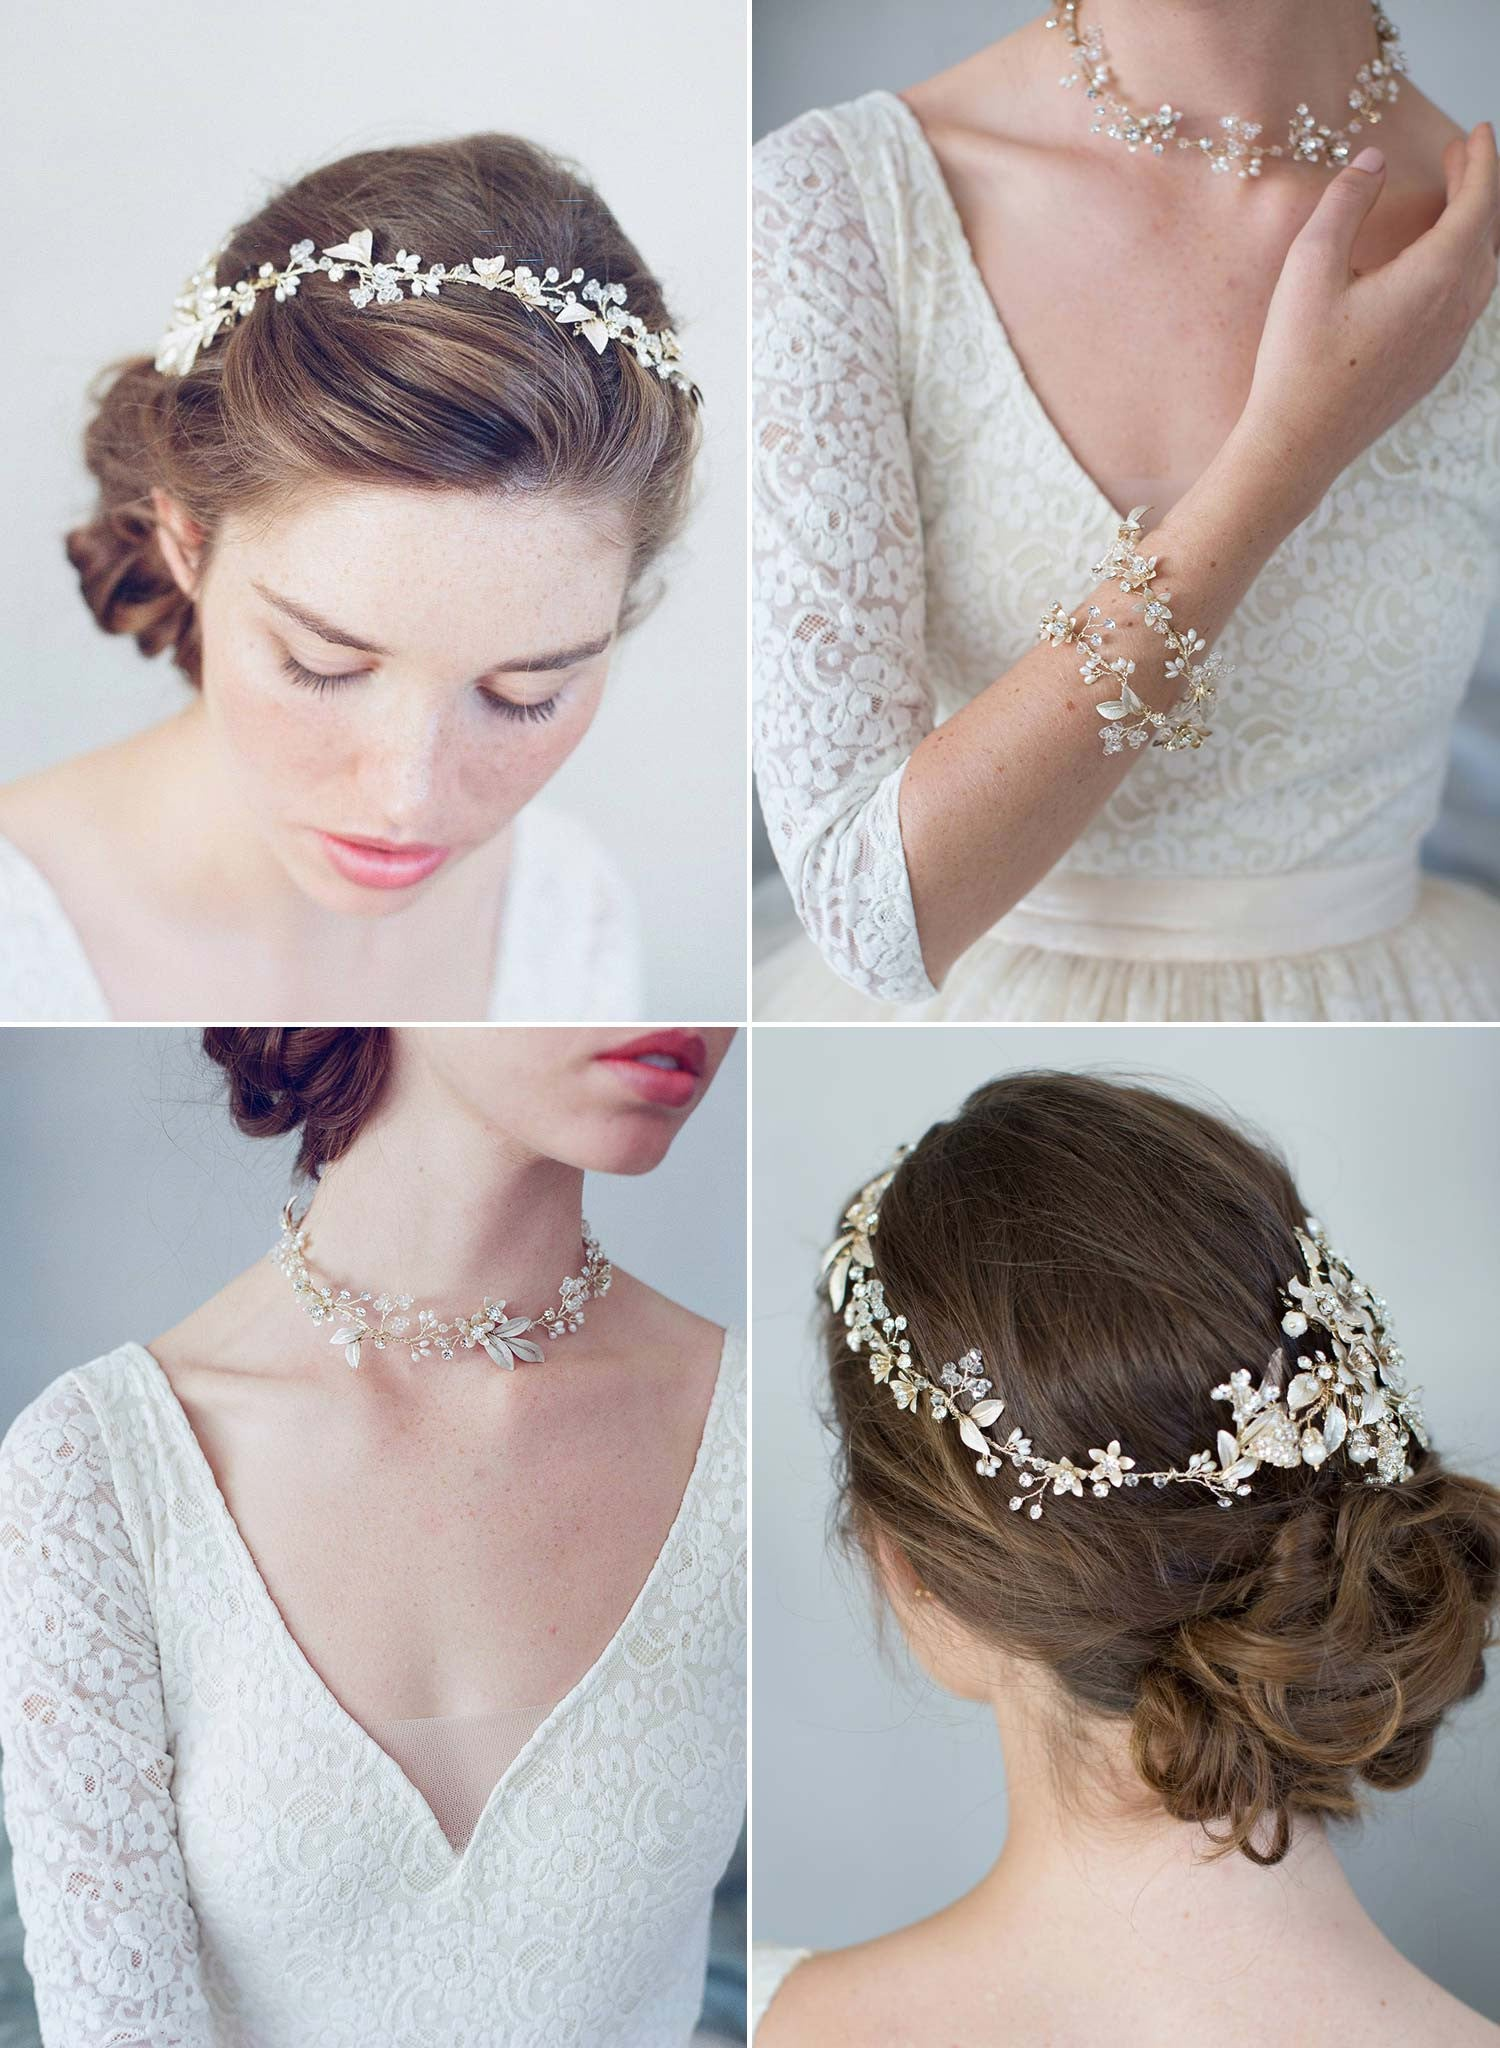 bridal convertible hair vine, necklace, bracelet, twigs and honey